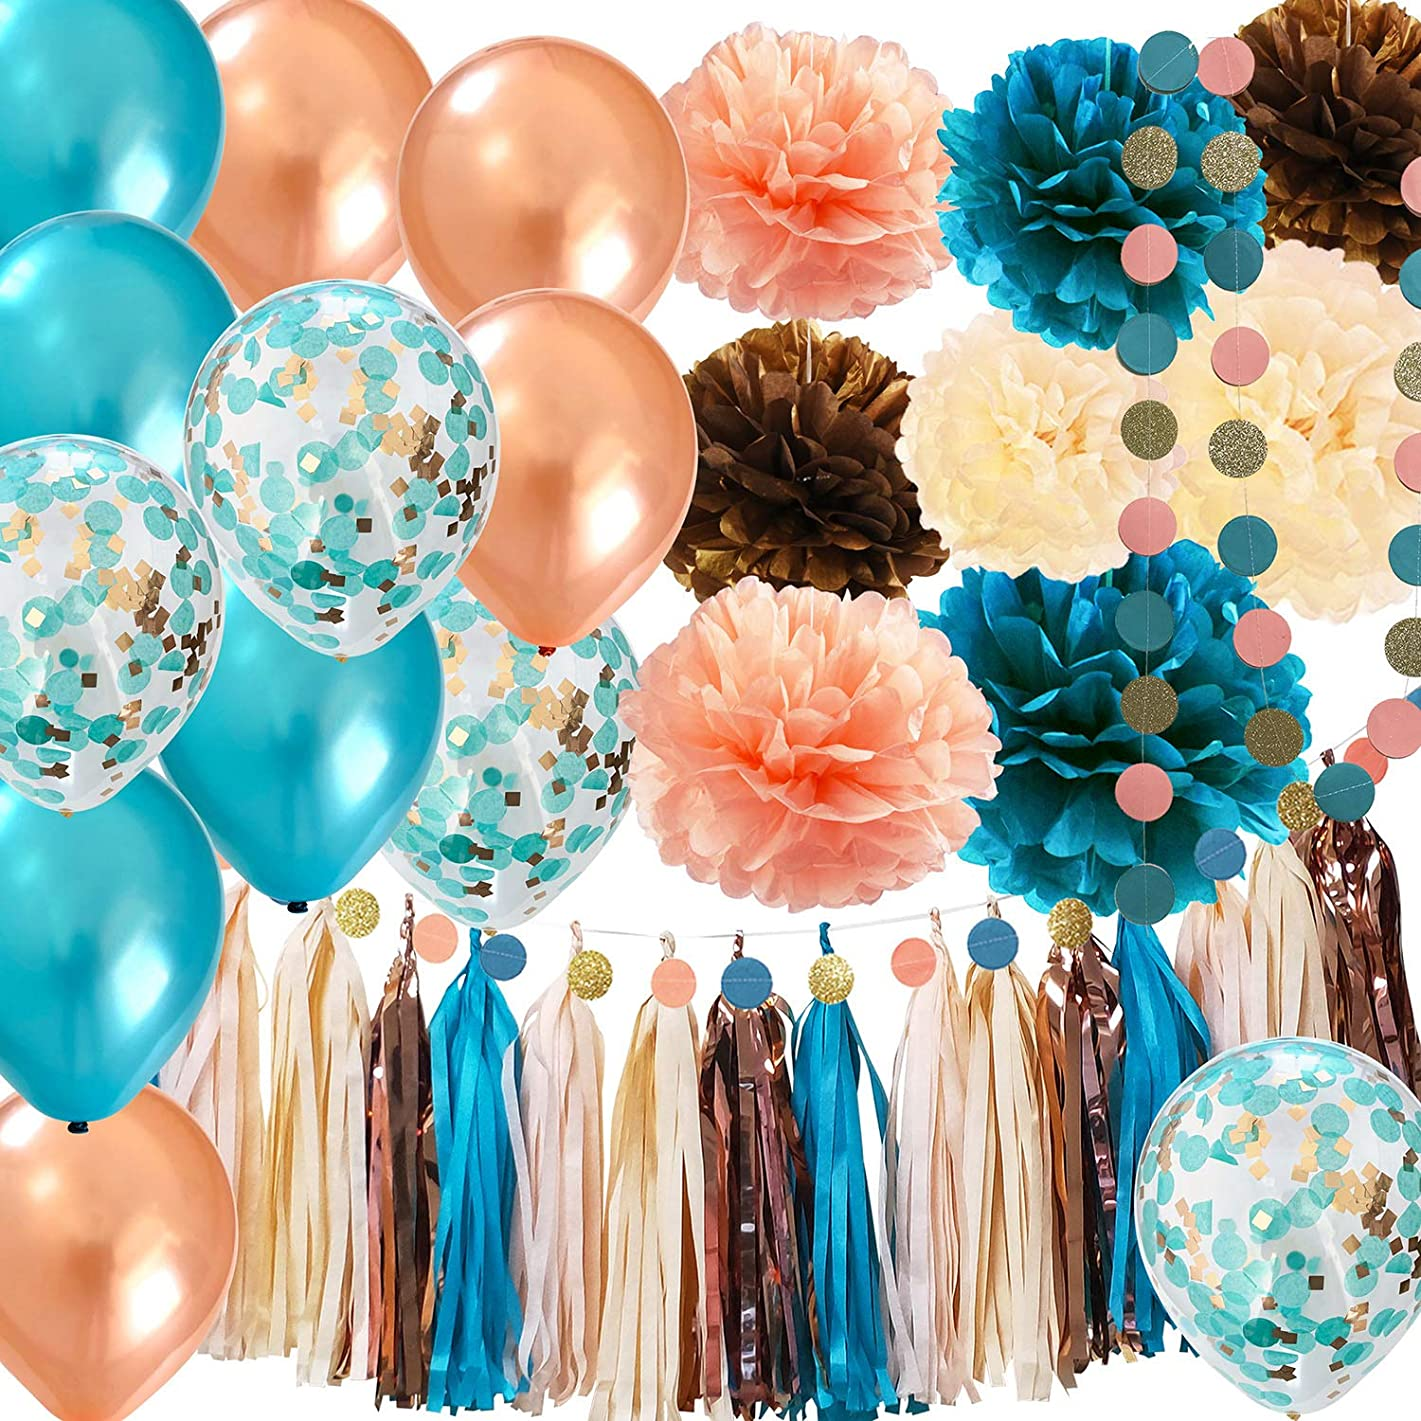 Teal Champagne Bridal Shower Decorations Qian's Party Teal Rose Gold Champagne Peach Glitter Gold Birthday Decorations Wedding/Teal Rose Gold Confetti Ballons/Rose Gold Bachelorette Party Decorations